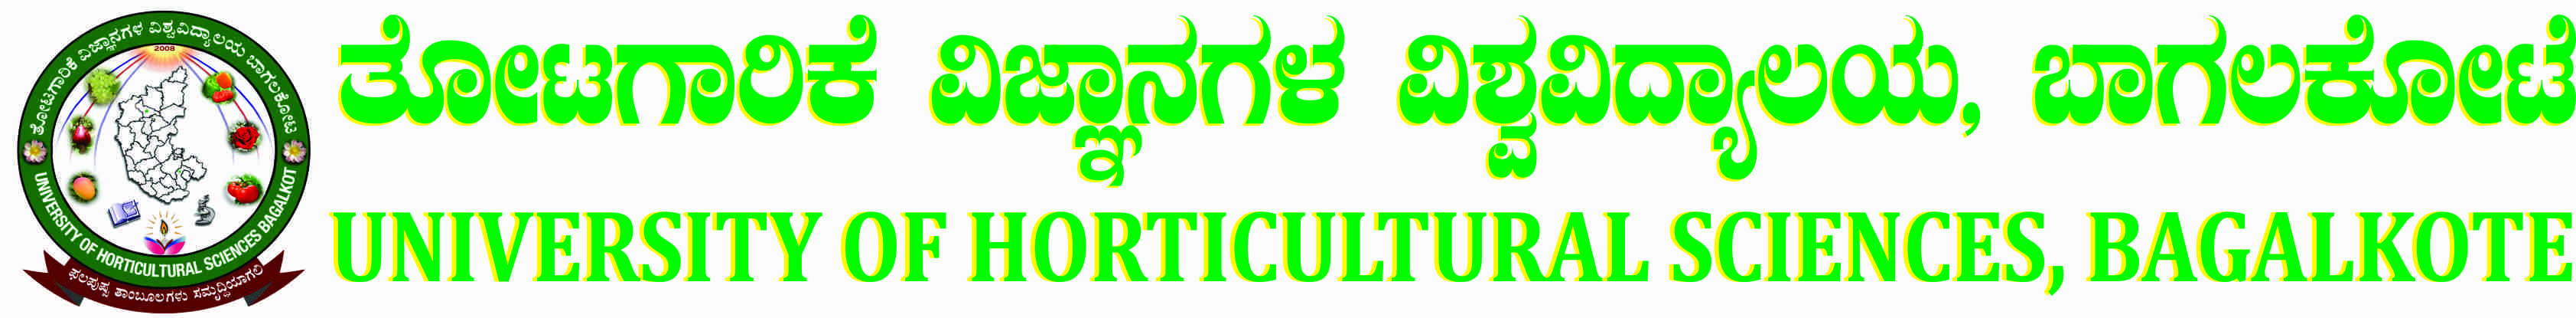 University Of Horticultural Sciences Bagalkot